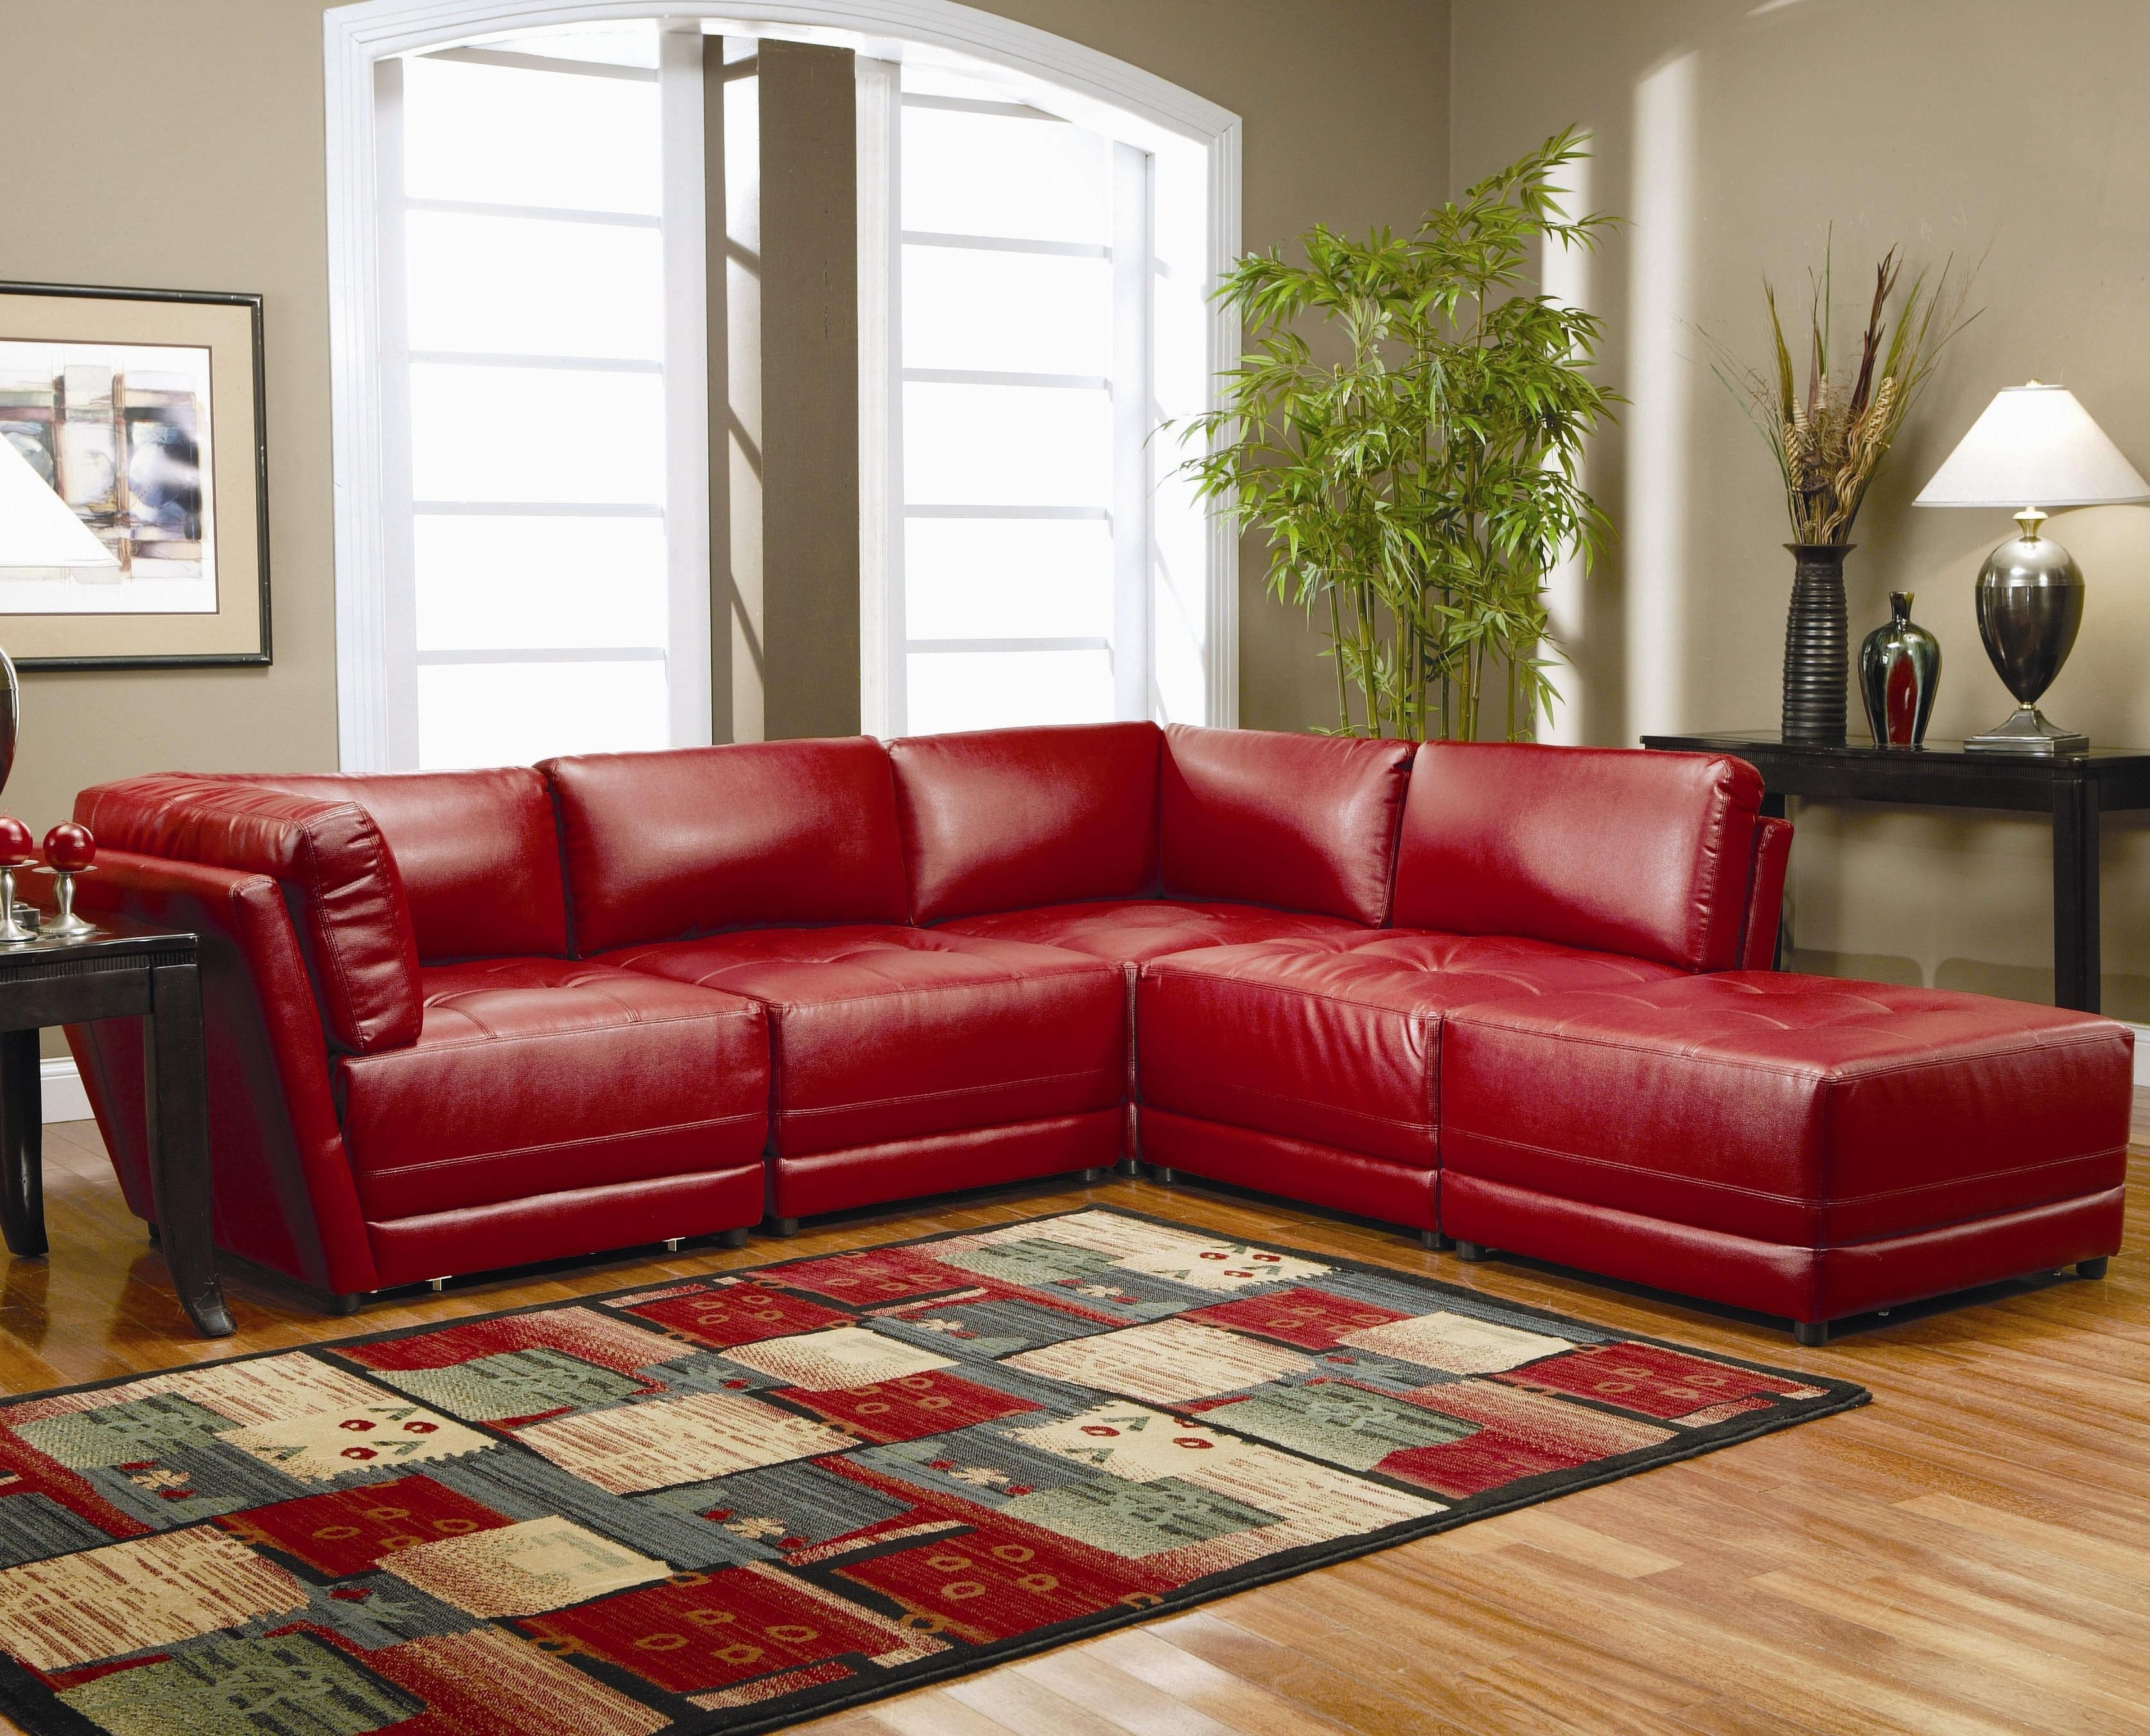 Red Leather Sectional Sofa Sale – Hotelsbacau Within Red Leather Sectional Couches (Image 8 of 10)